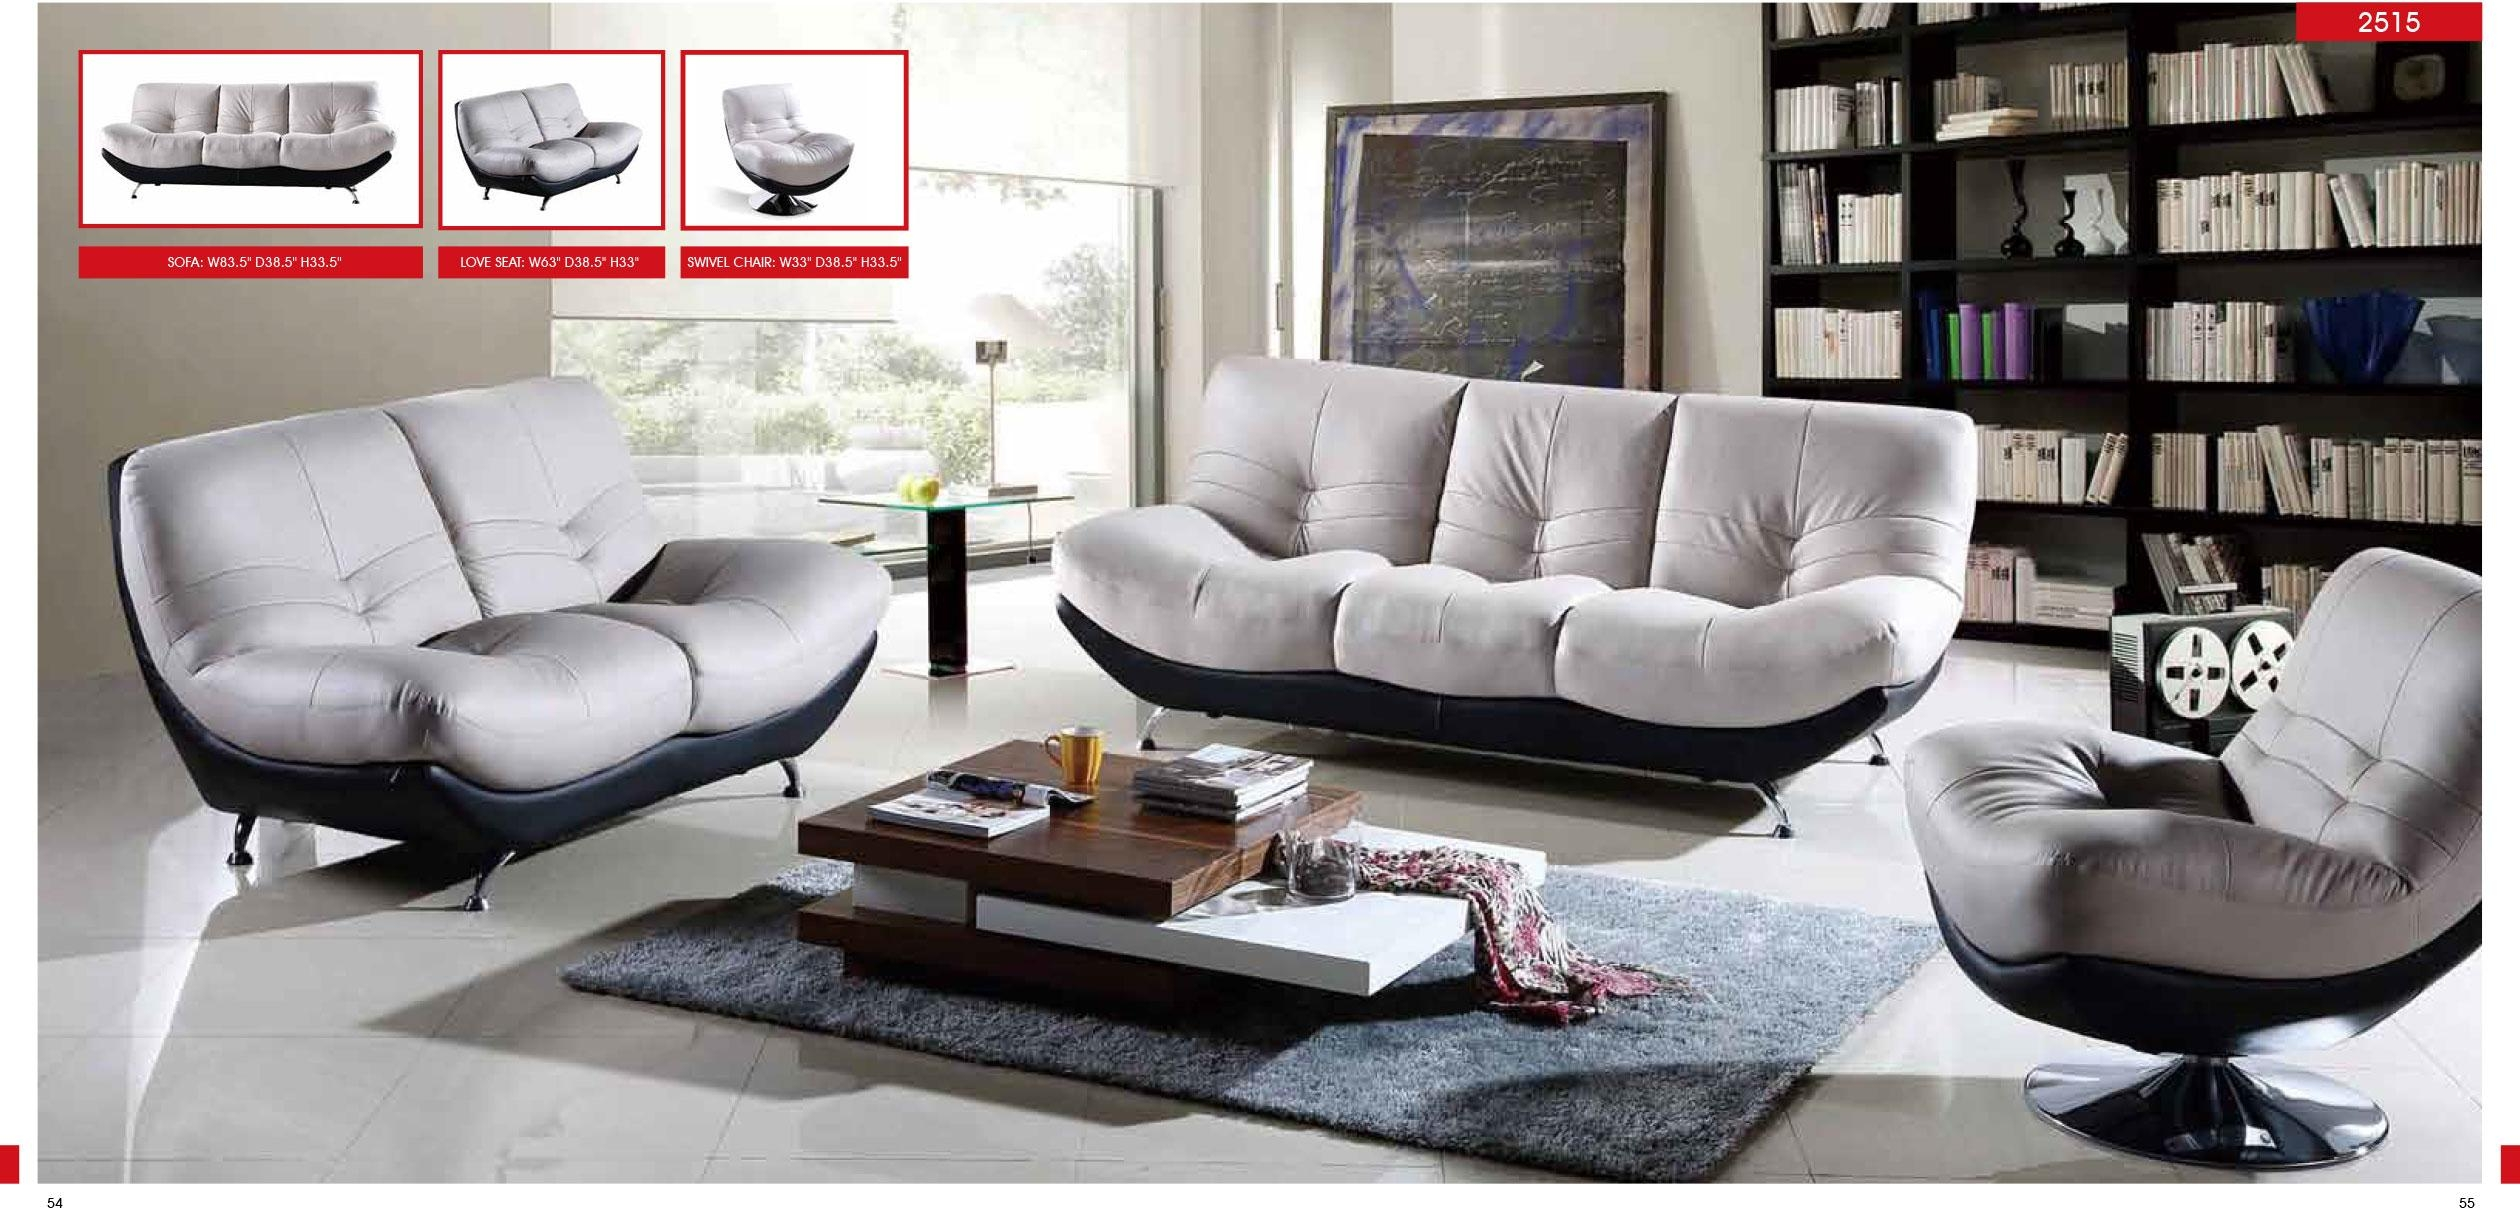 Extraordinary Living Room Furniture Sets Ideas – Underpriced Pertaining To Living Room Sofa Chairs (View 5 of 20)